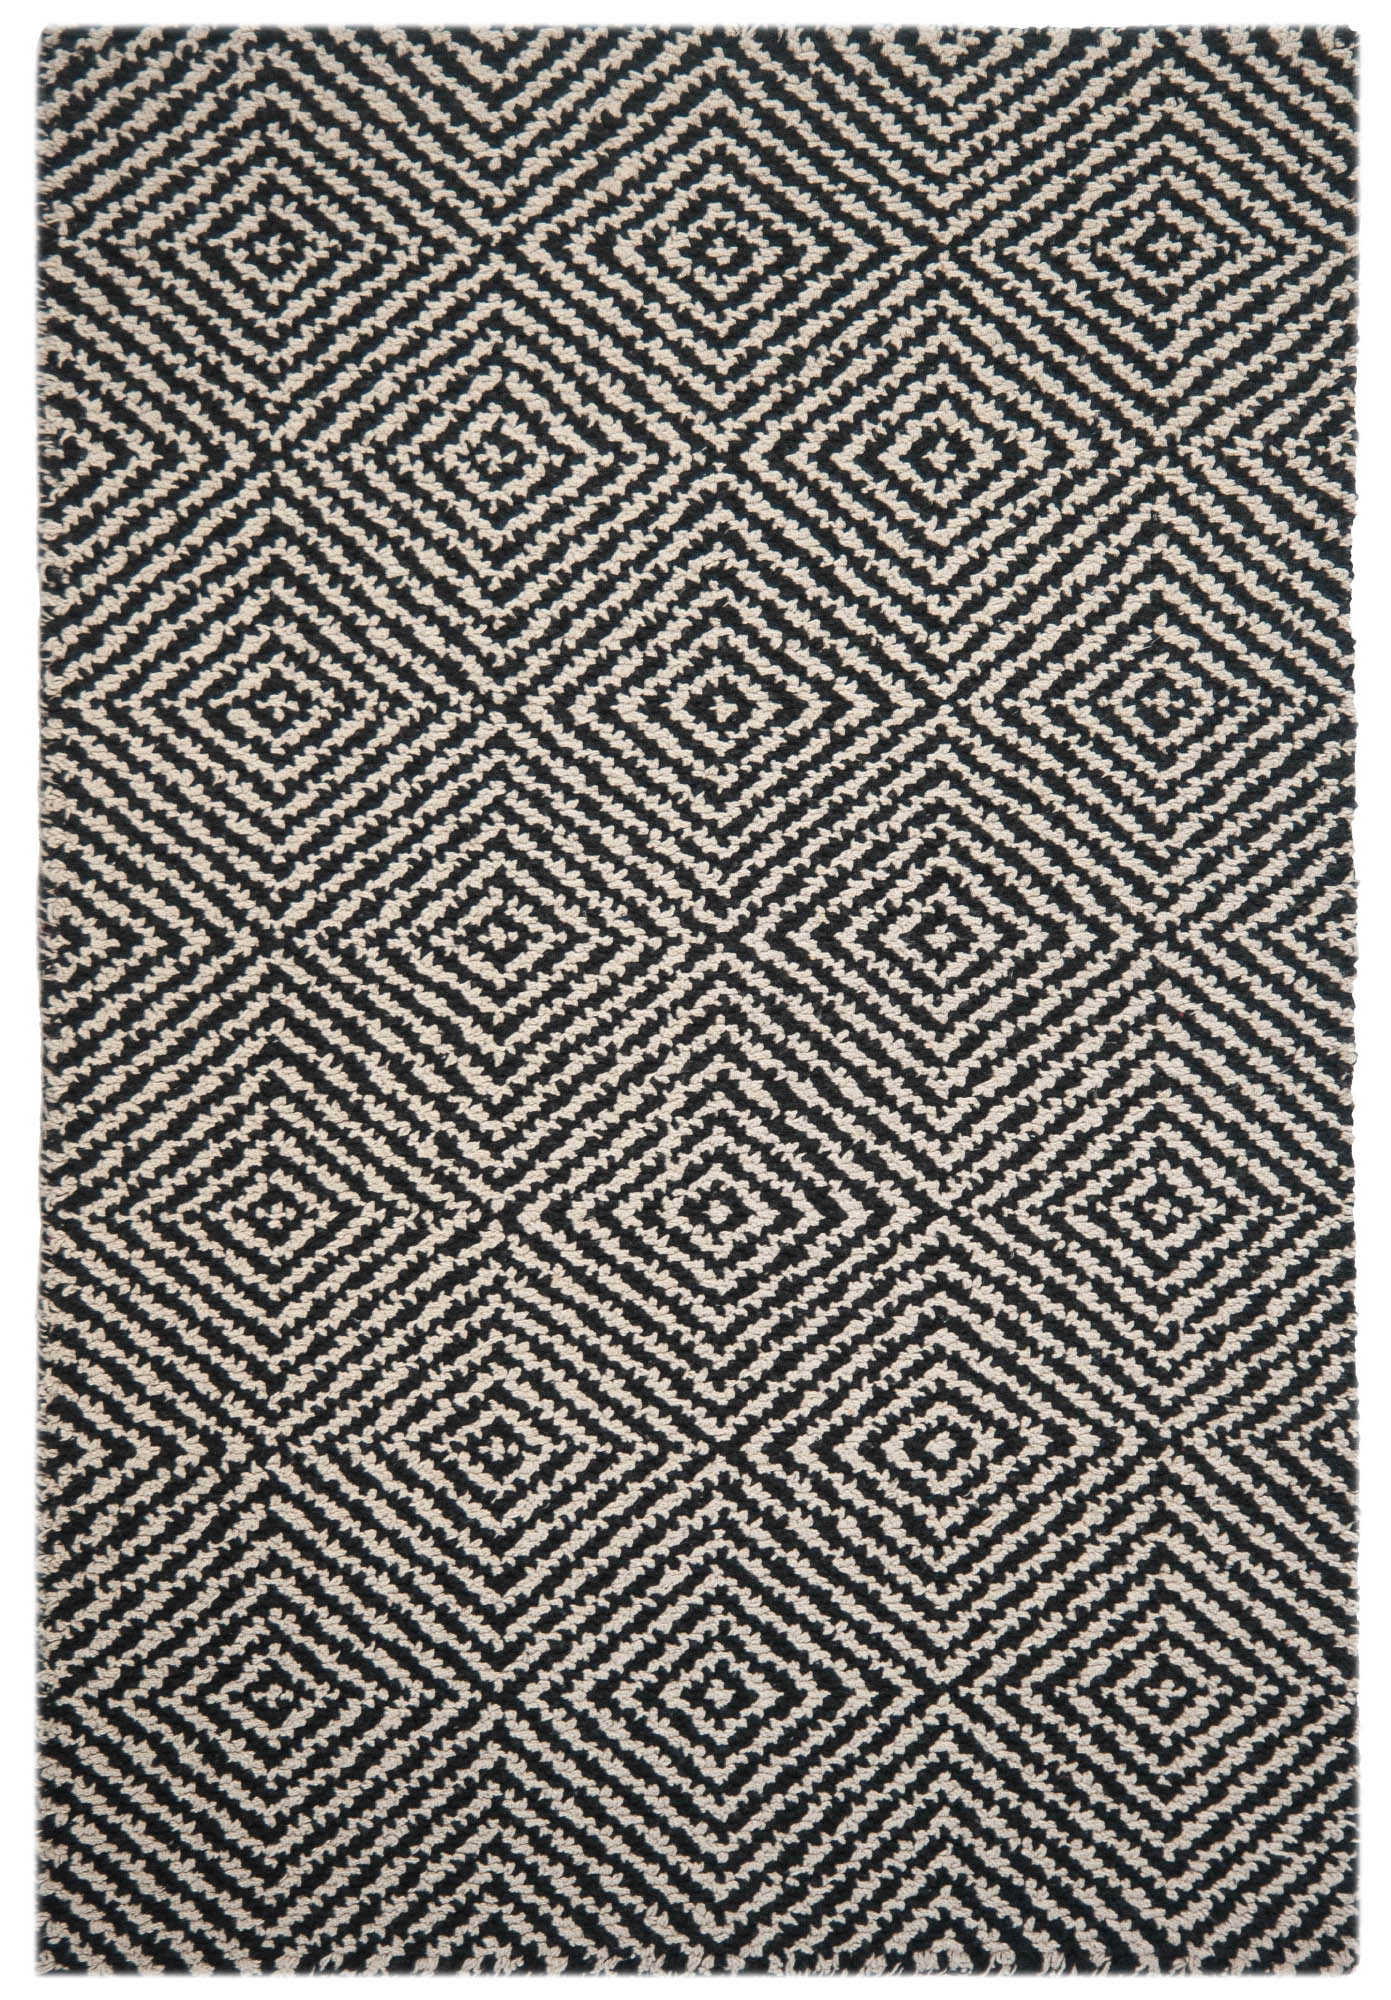 Kensington Black/Natural Eco Cotton Loom Hooked Rug